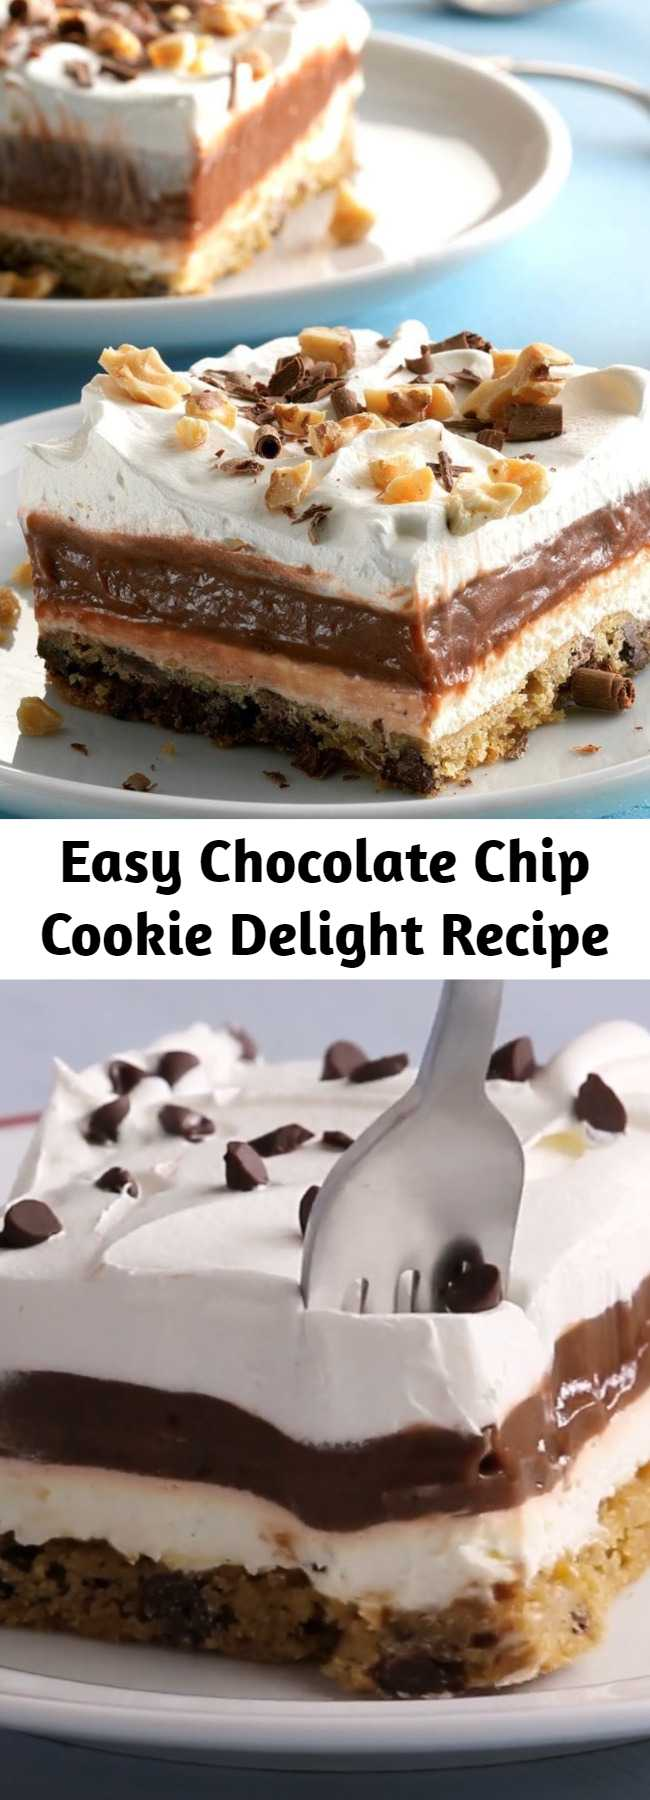 Easy Chocolate Chip Cookie Delight Recipe - Simple Chocolate Chip Cookie Delight Recipe - This is a simple chocolate delight recipe for any type of potluck occasion, and the pan always comes home empty.